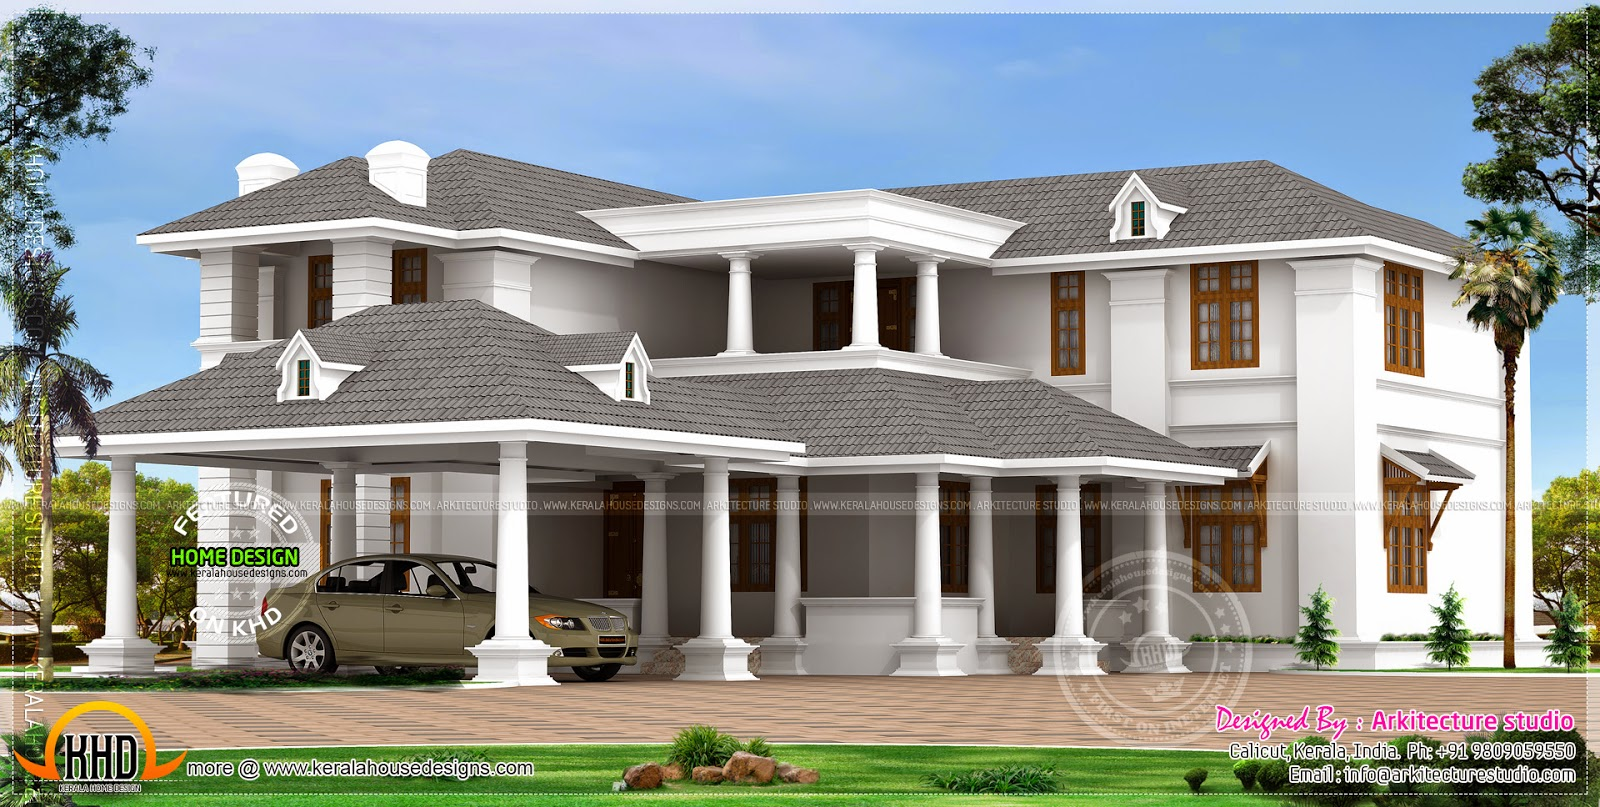 Big luxury home design kerala home design and floor plans for Home design 6